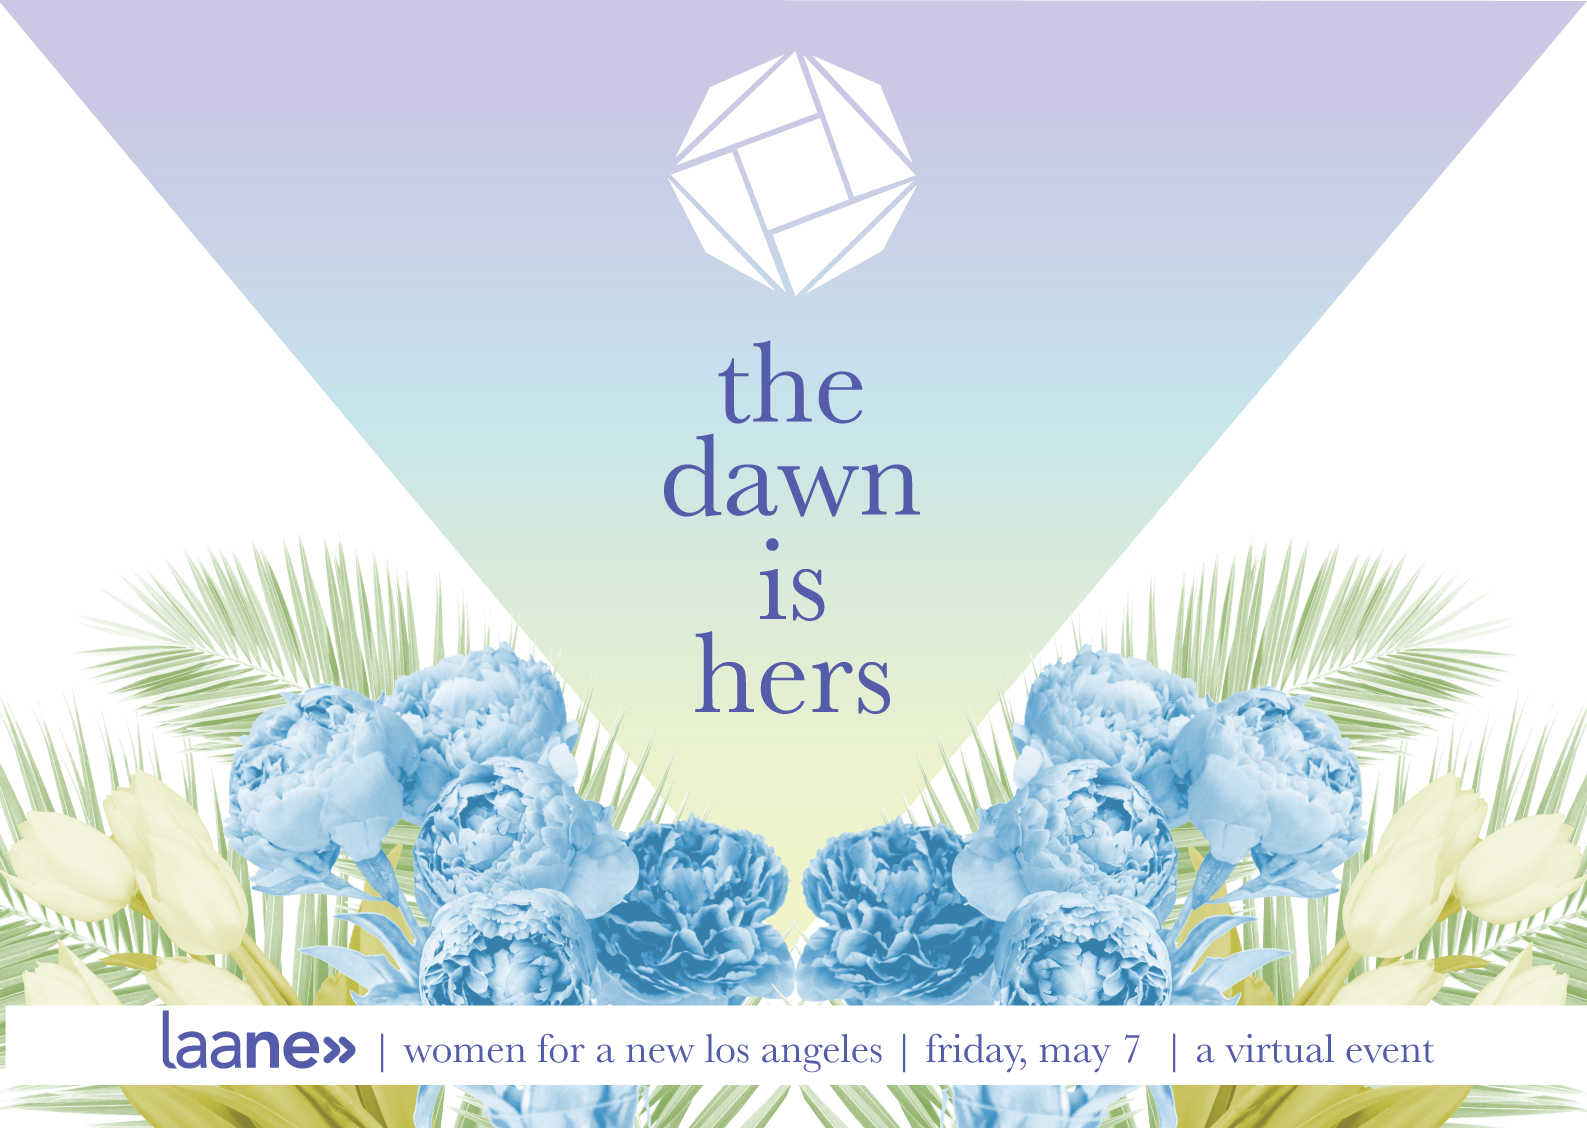 2021 Women for a New Los Angeles: The Dawn is Hers